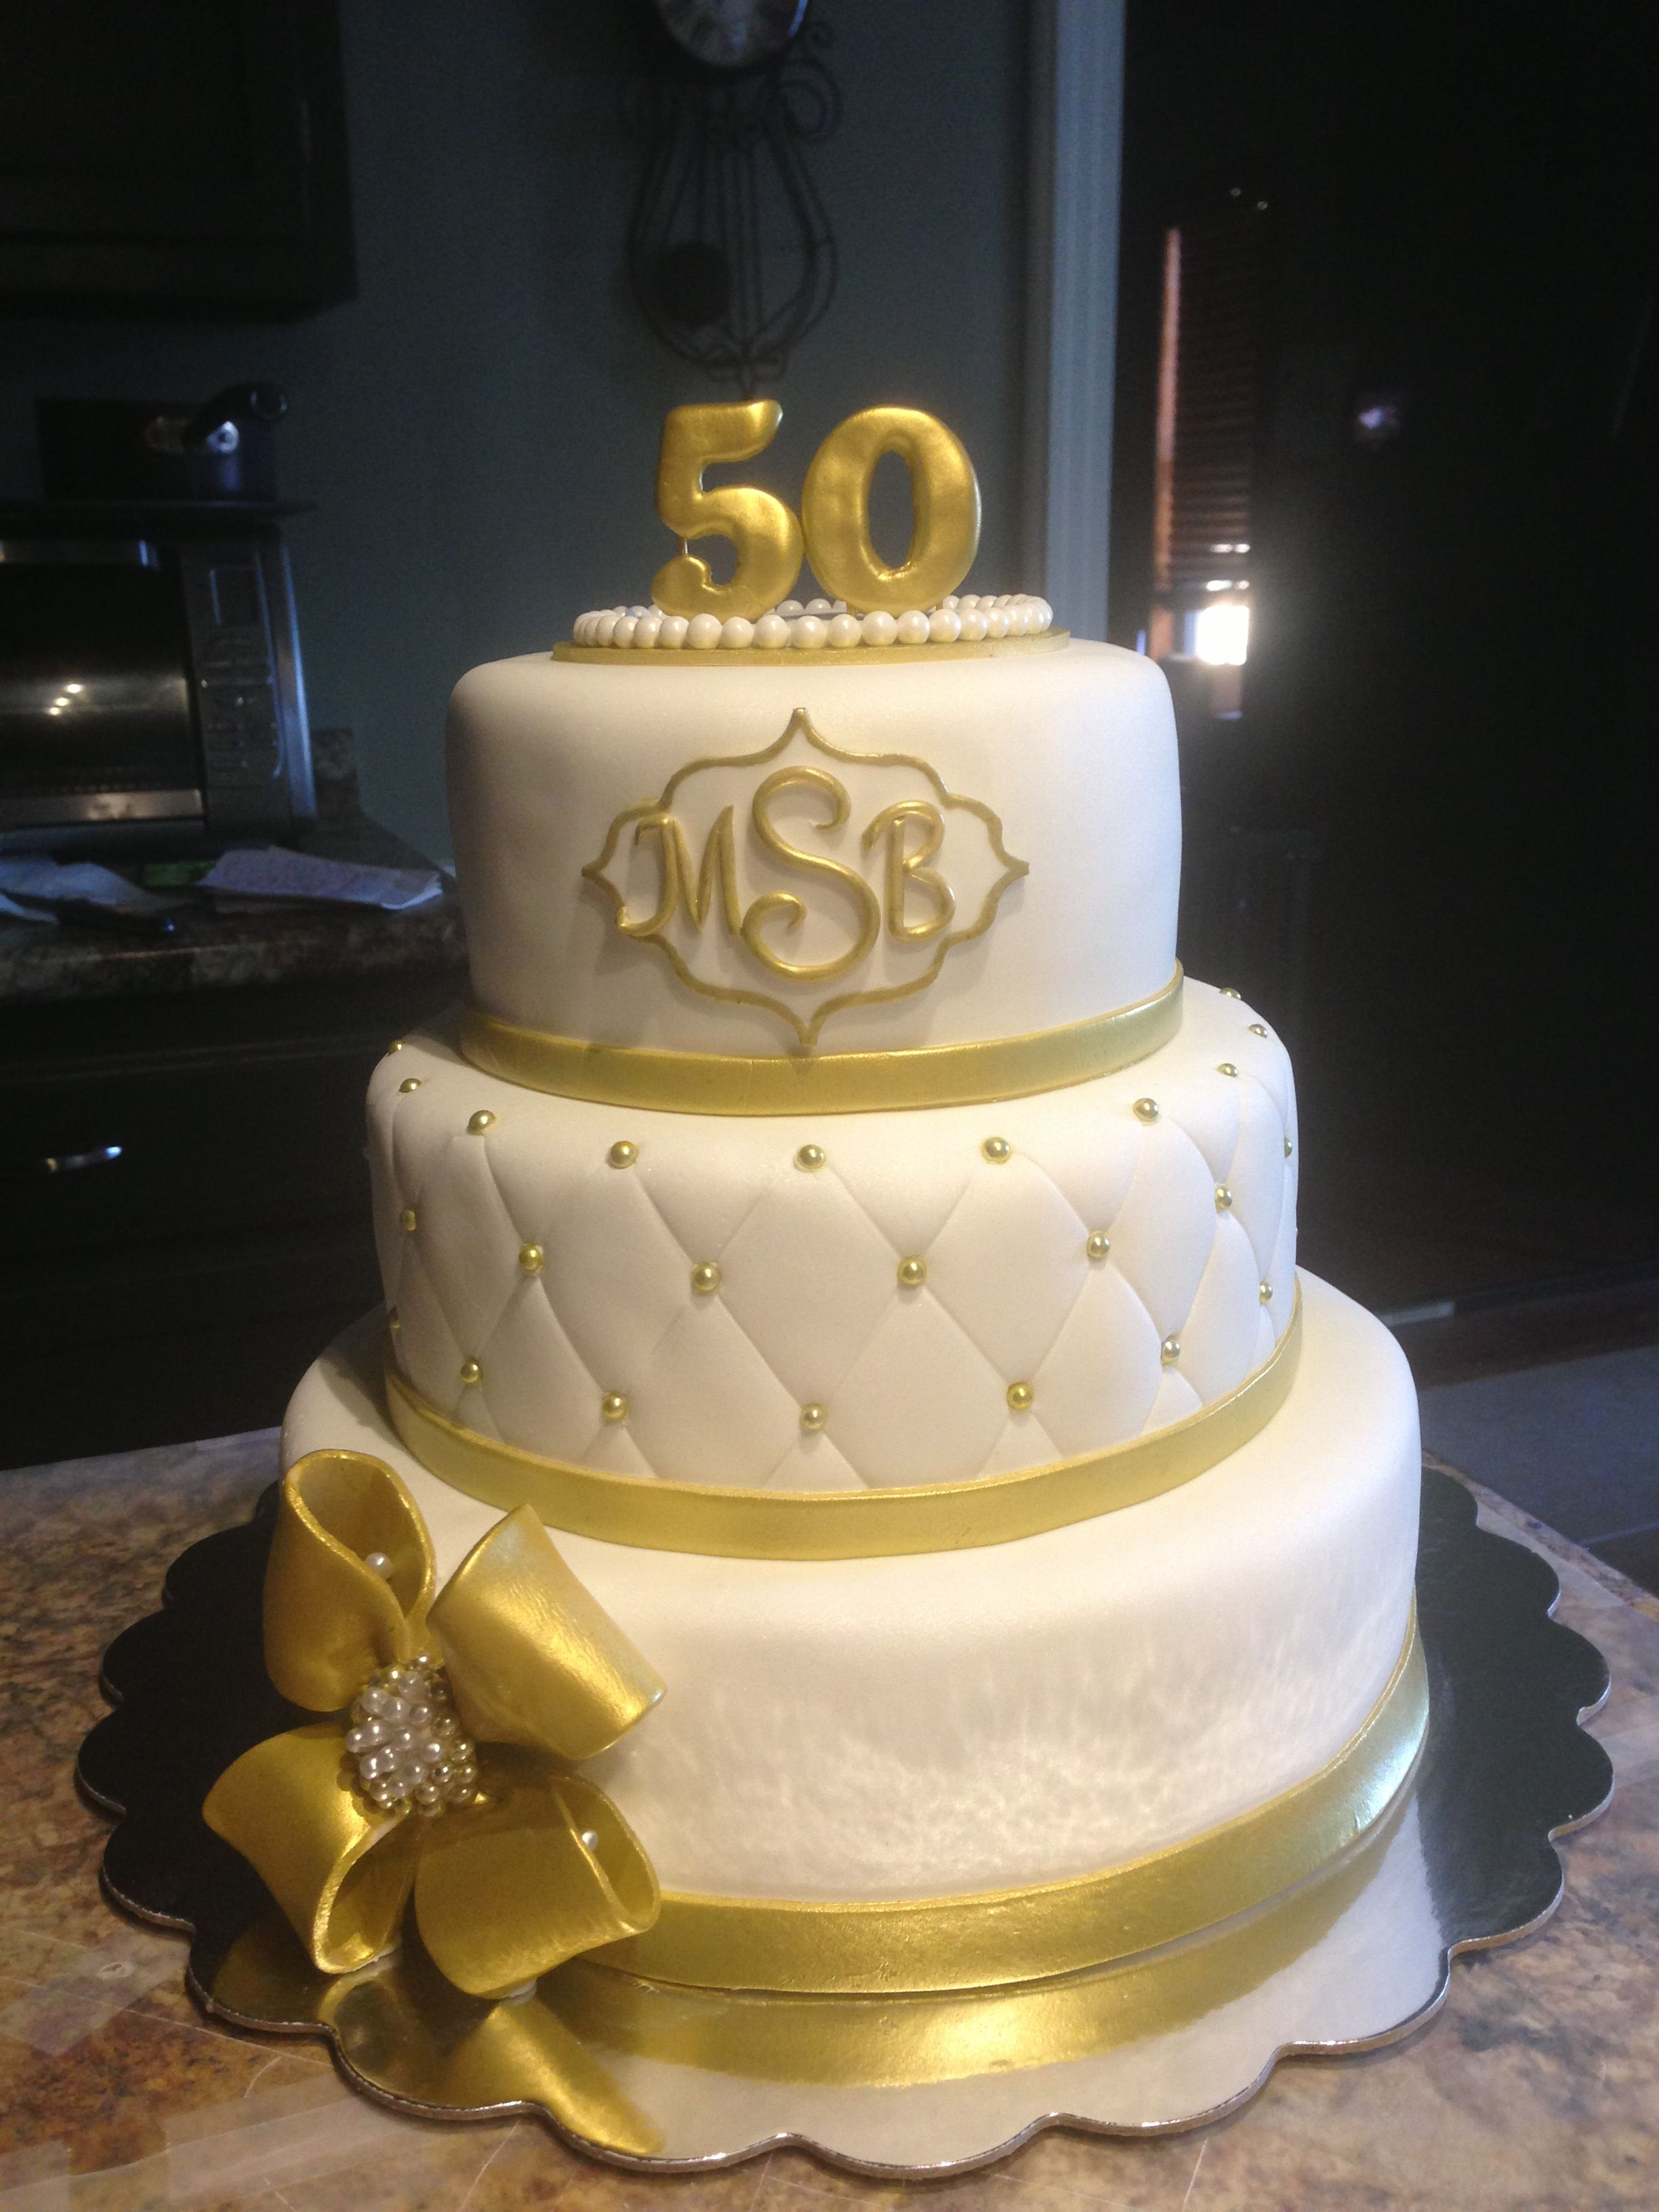 50th Wedding Anniversary Cake I Made Mallory Gray 50